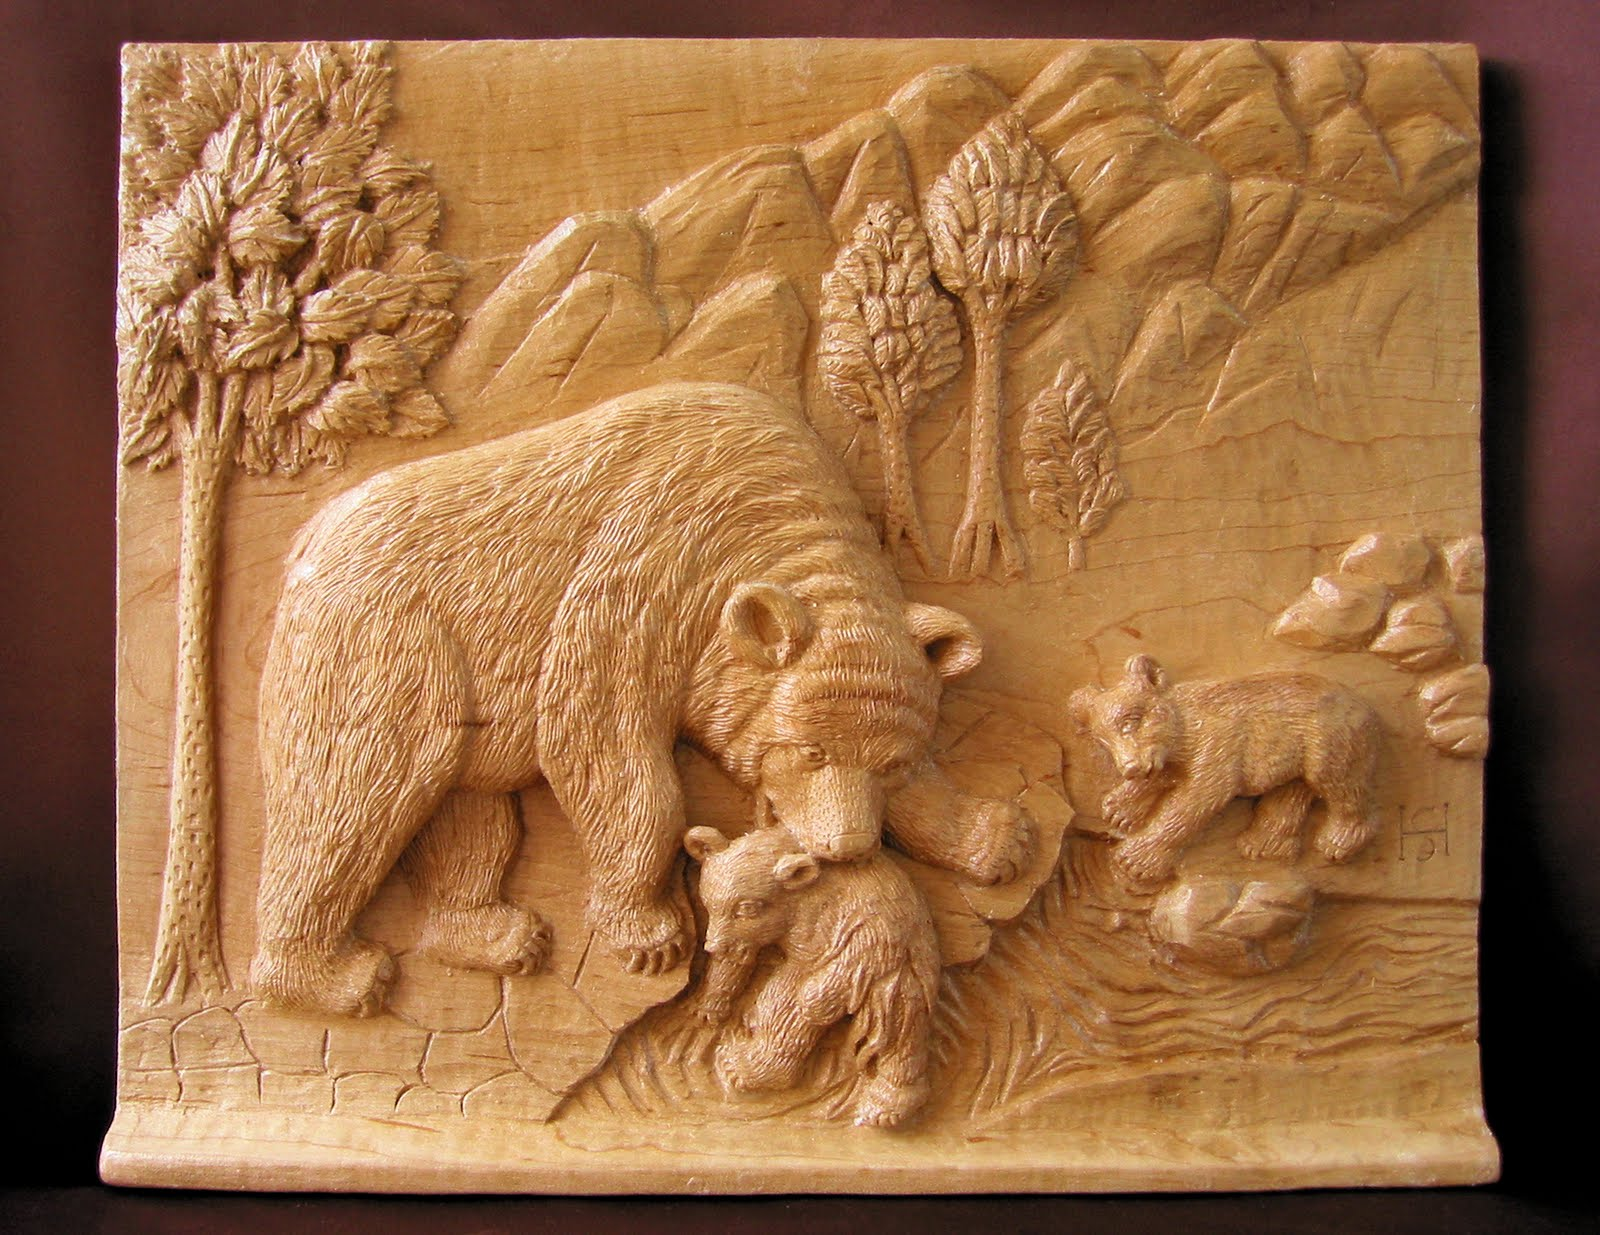 Relief carving dremel